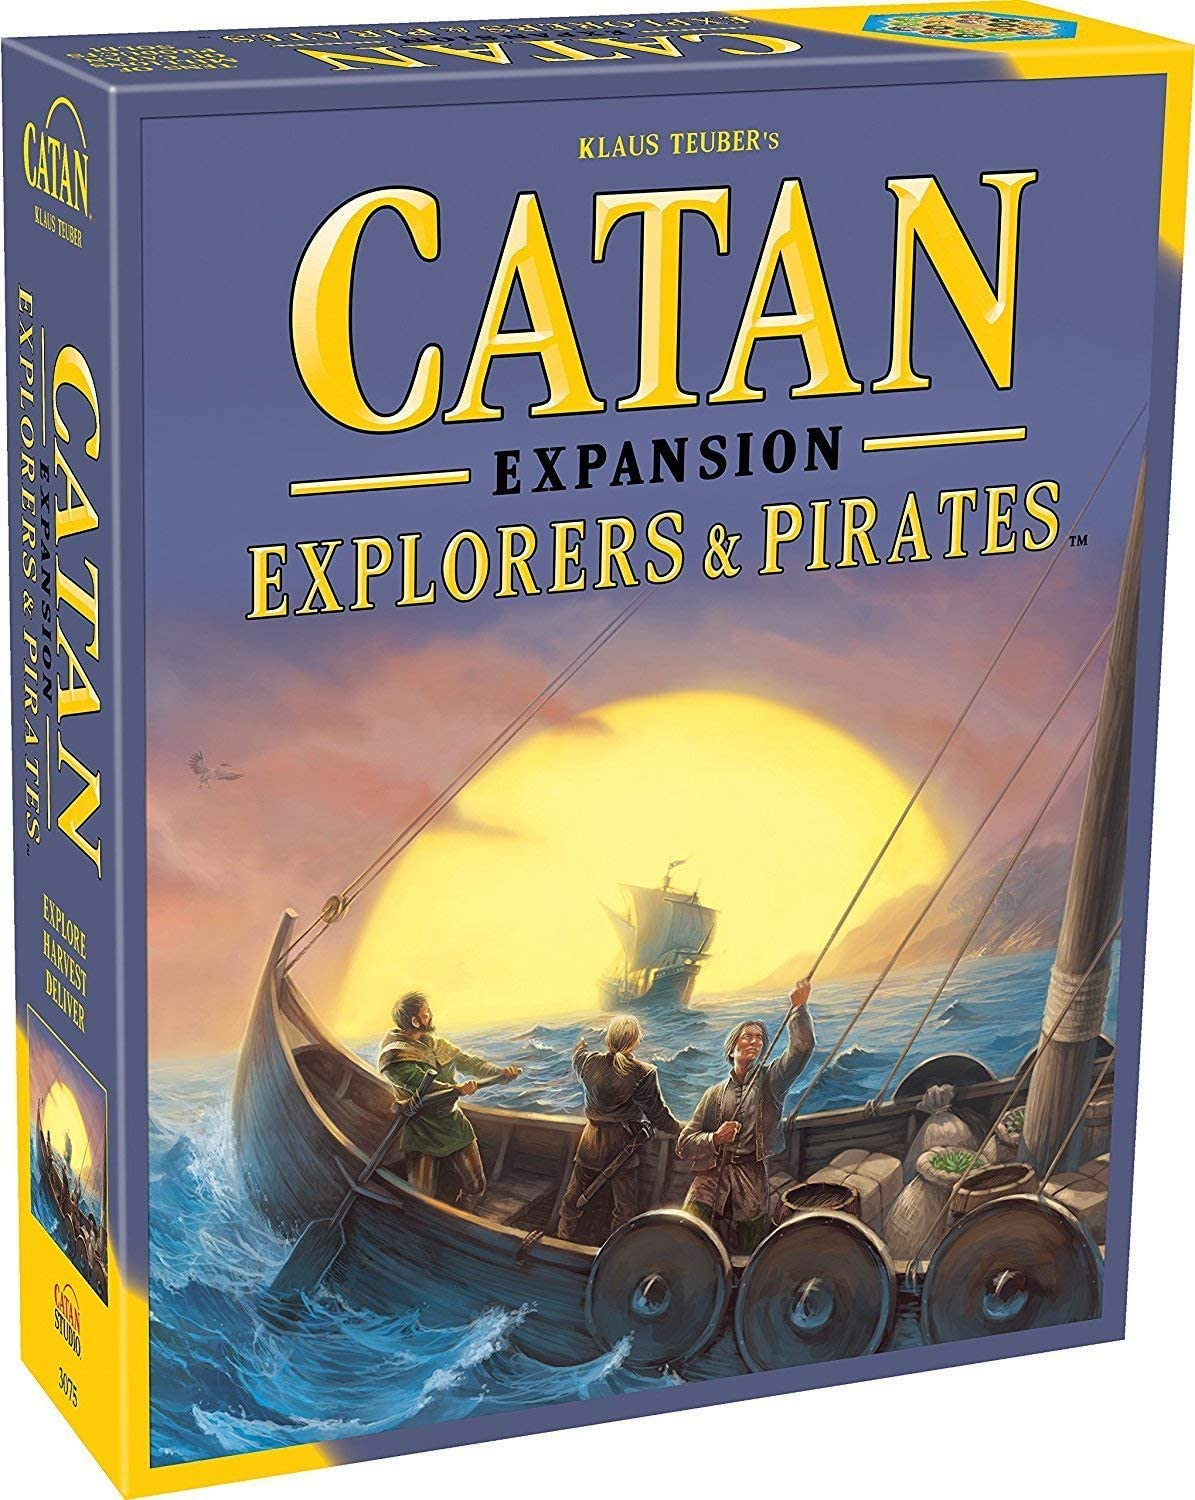 Catan Explorers and Pirates Board Game Expansion | Board Game for Adults and Family | Adventure Board Game | Ages 12+ | for 3 to 4 Players | Average Playtime 90 Minutes | Made by Catan Studio